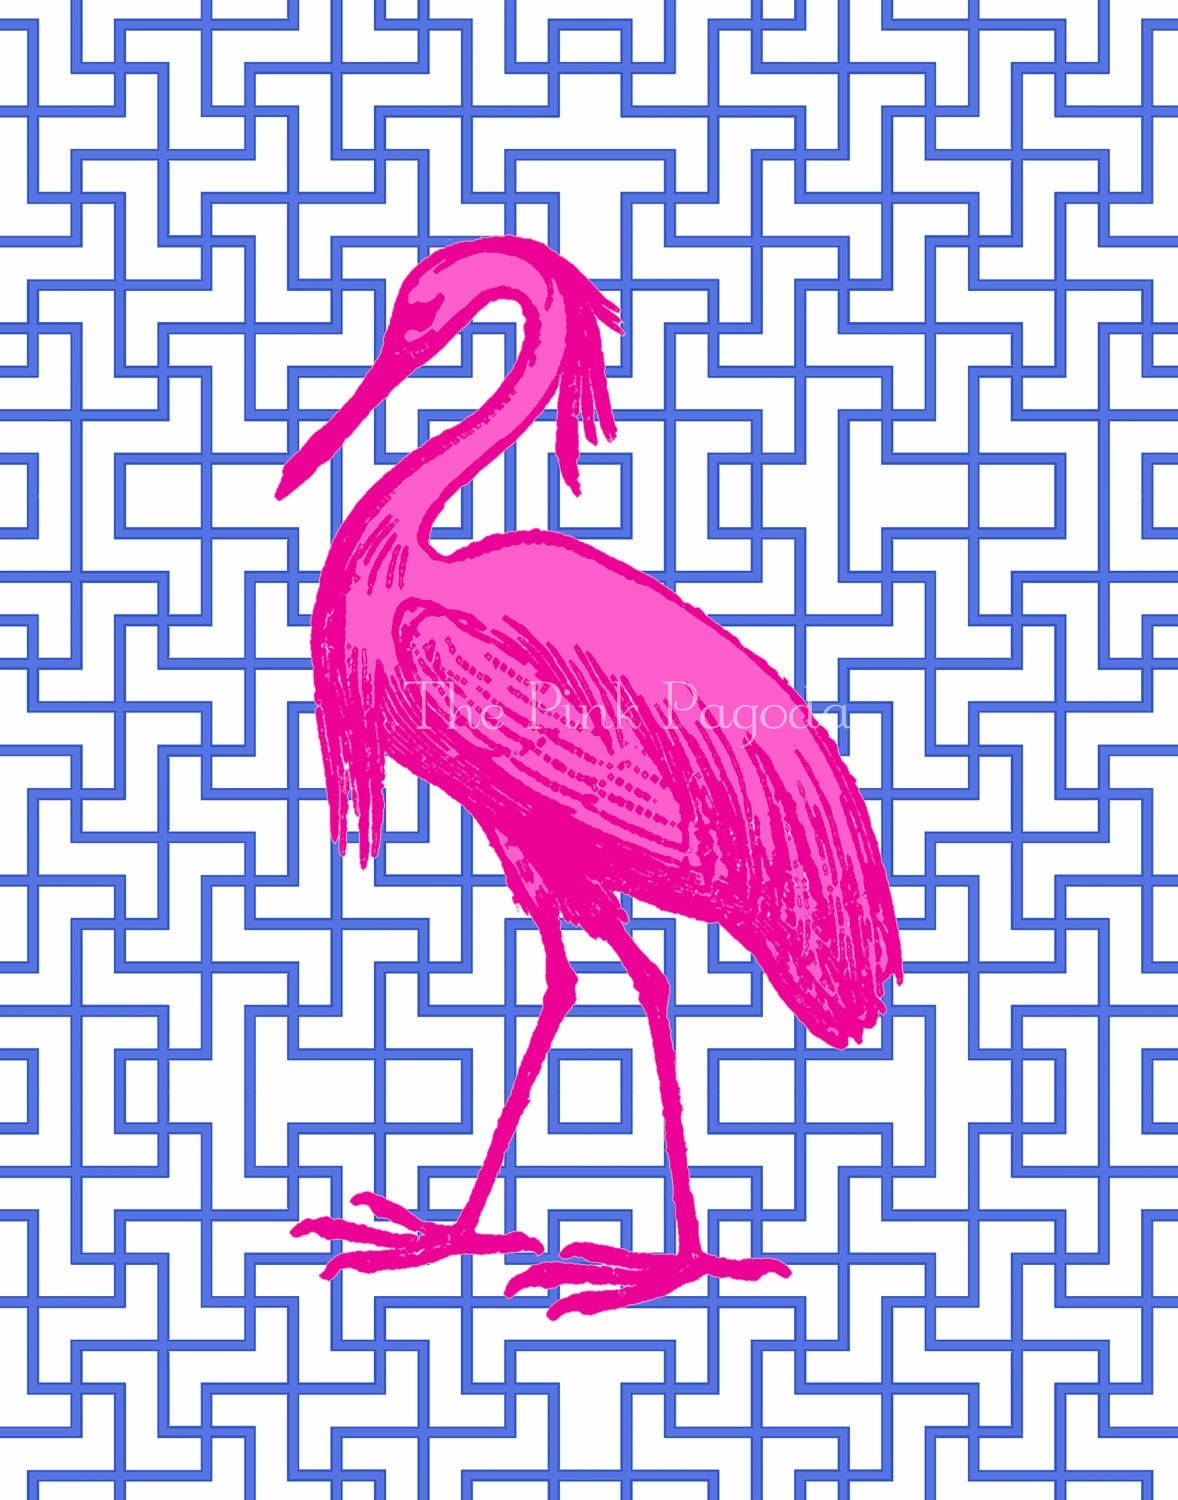 Hot Pink Egret on Navy Facing Left 8x10 Giclee - thepinkpagoda